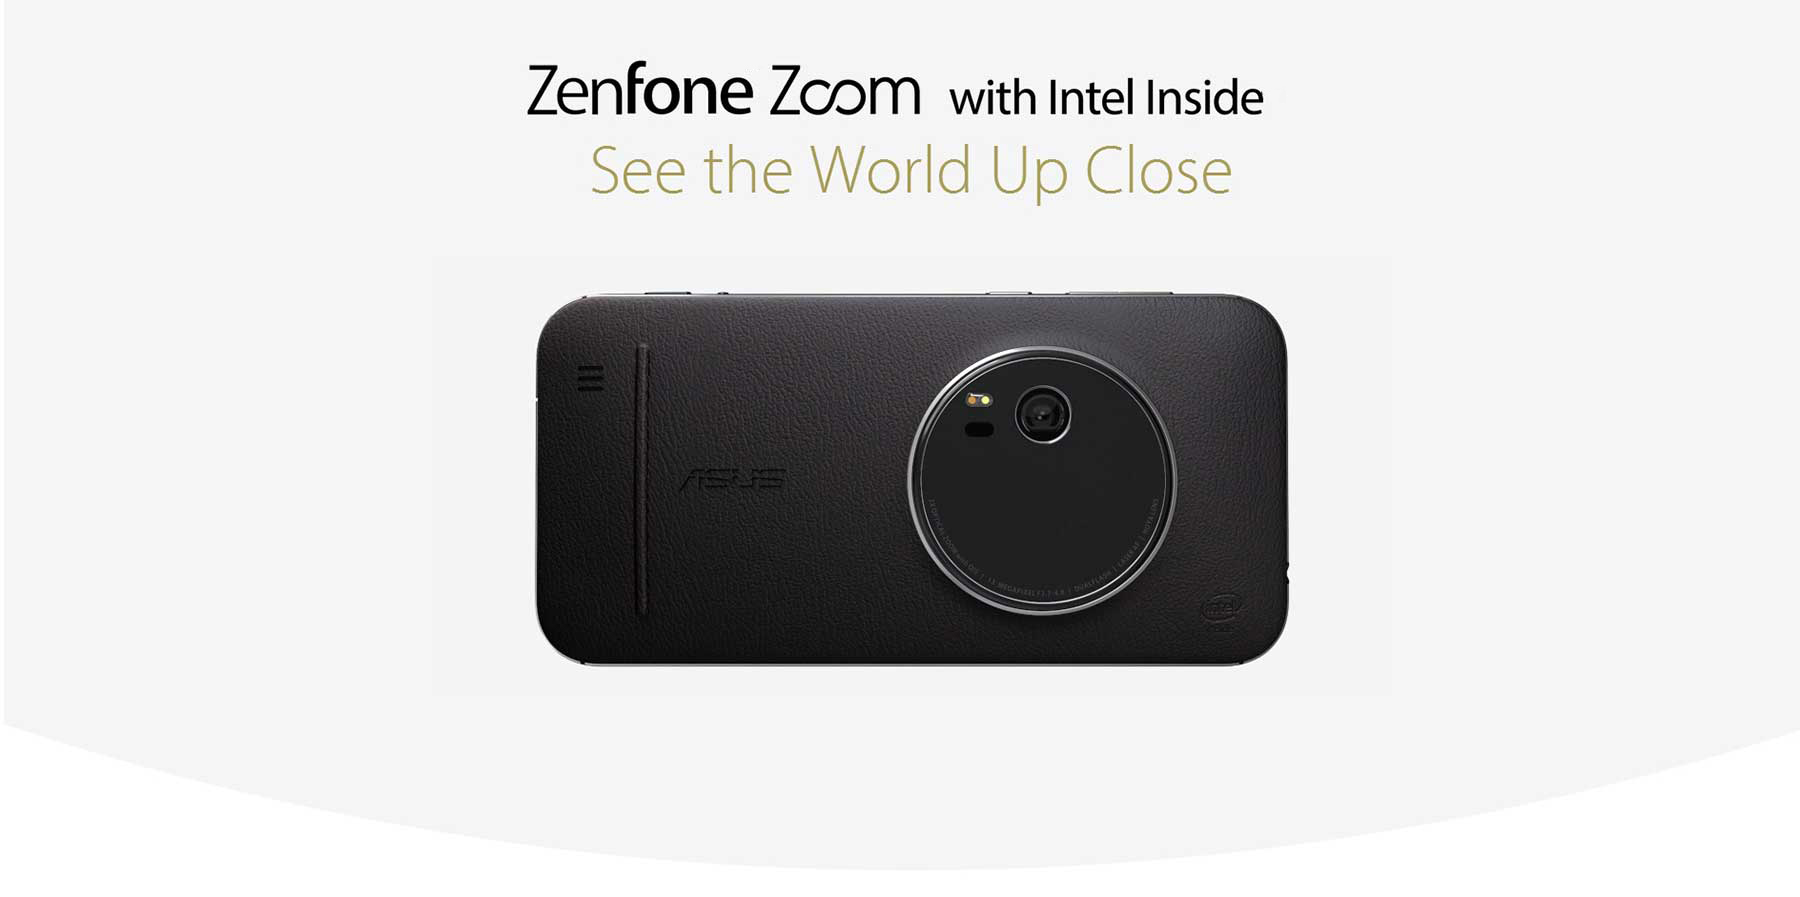 ASUS ZenFone Zoom ZX551ML 5.5 inch Android 5.0 4G Phablet Intel Atom Z3580 64bit Quad Core 2.3GHz 4GB RAM 64GB ROM 13.0MP + 5.0MP Cameras NFC